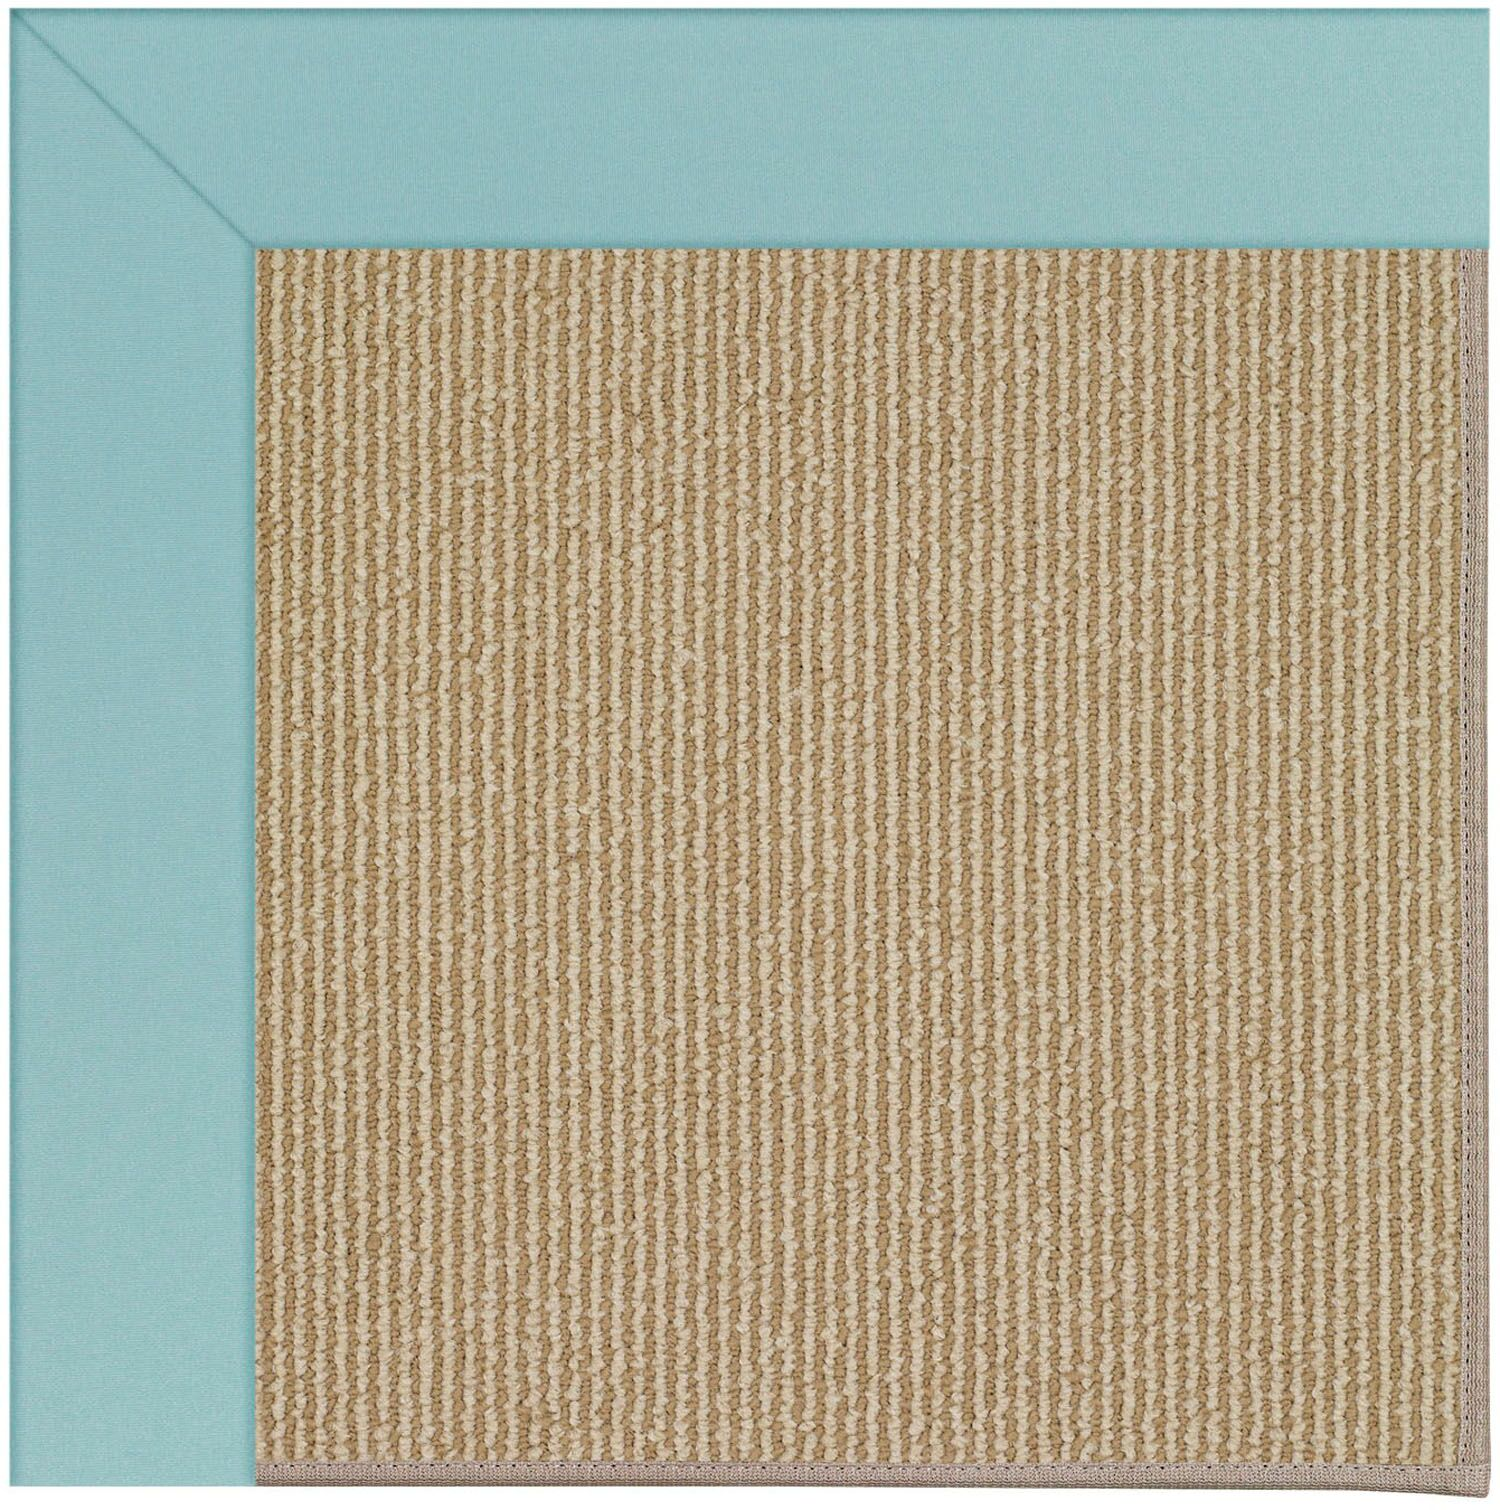 Lisle Machine Tufted Seafaring Blue/Brown Indoor/Outdoor Area Rug Rug Size: Rectangle 10' x 14'